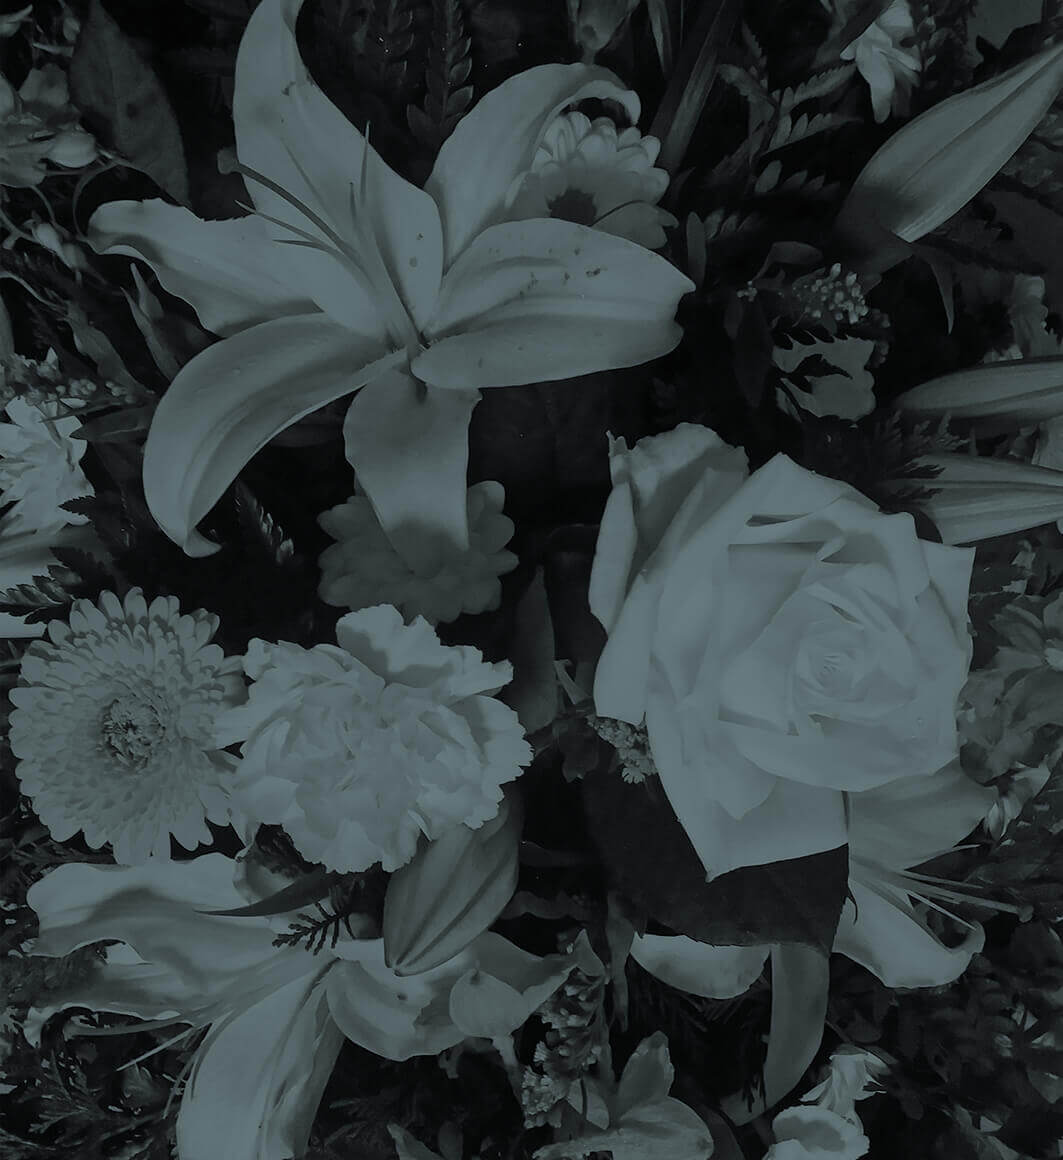 Respecting Your Wishes - black and white photo of lilies and roses